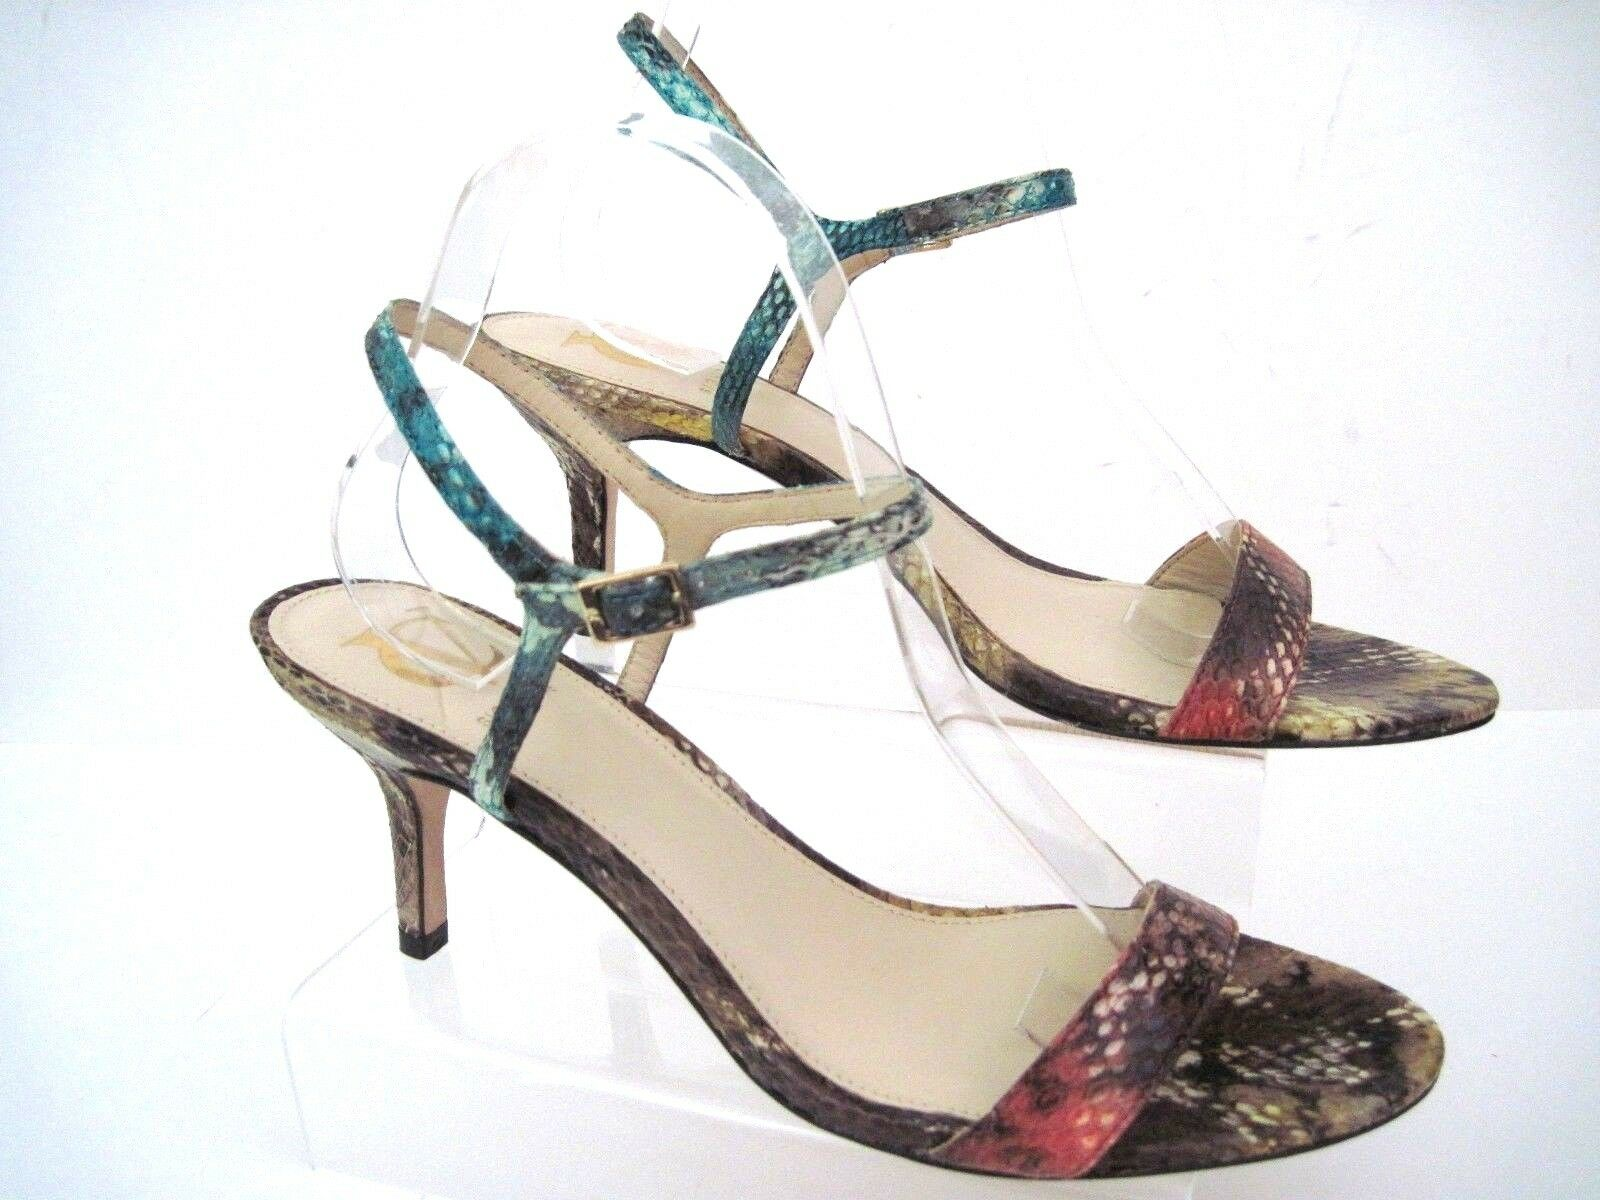 VC SIGNATURE by Vince Camuto Snakeskin Open Toe Ankle Strap Heels Größe 10 M